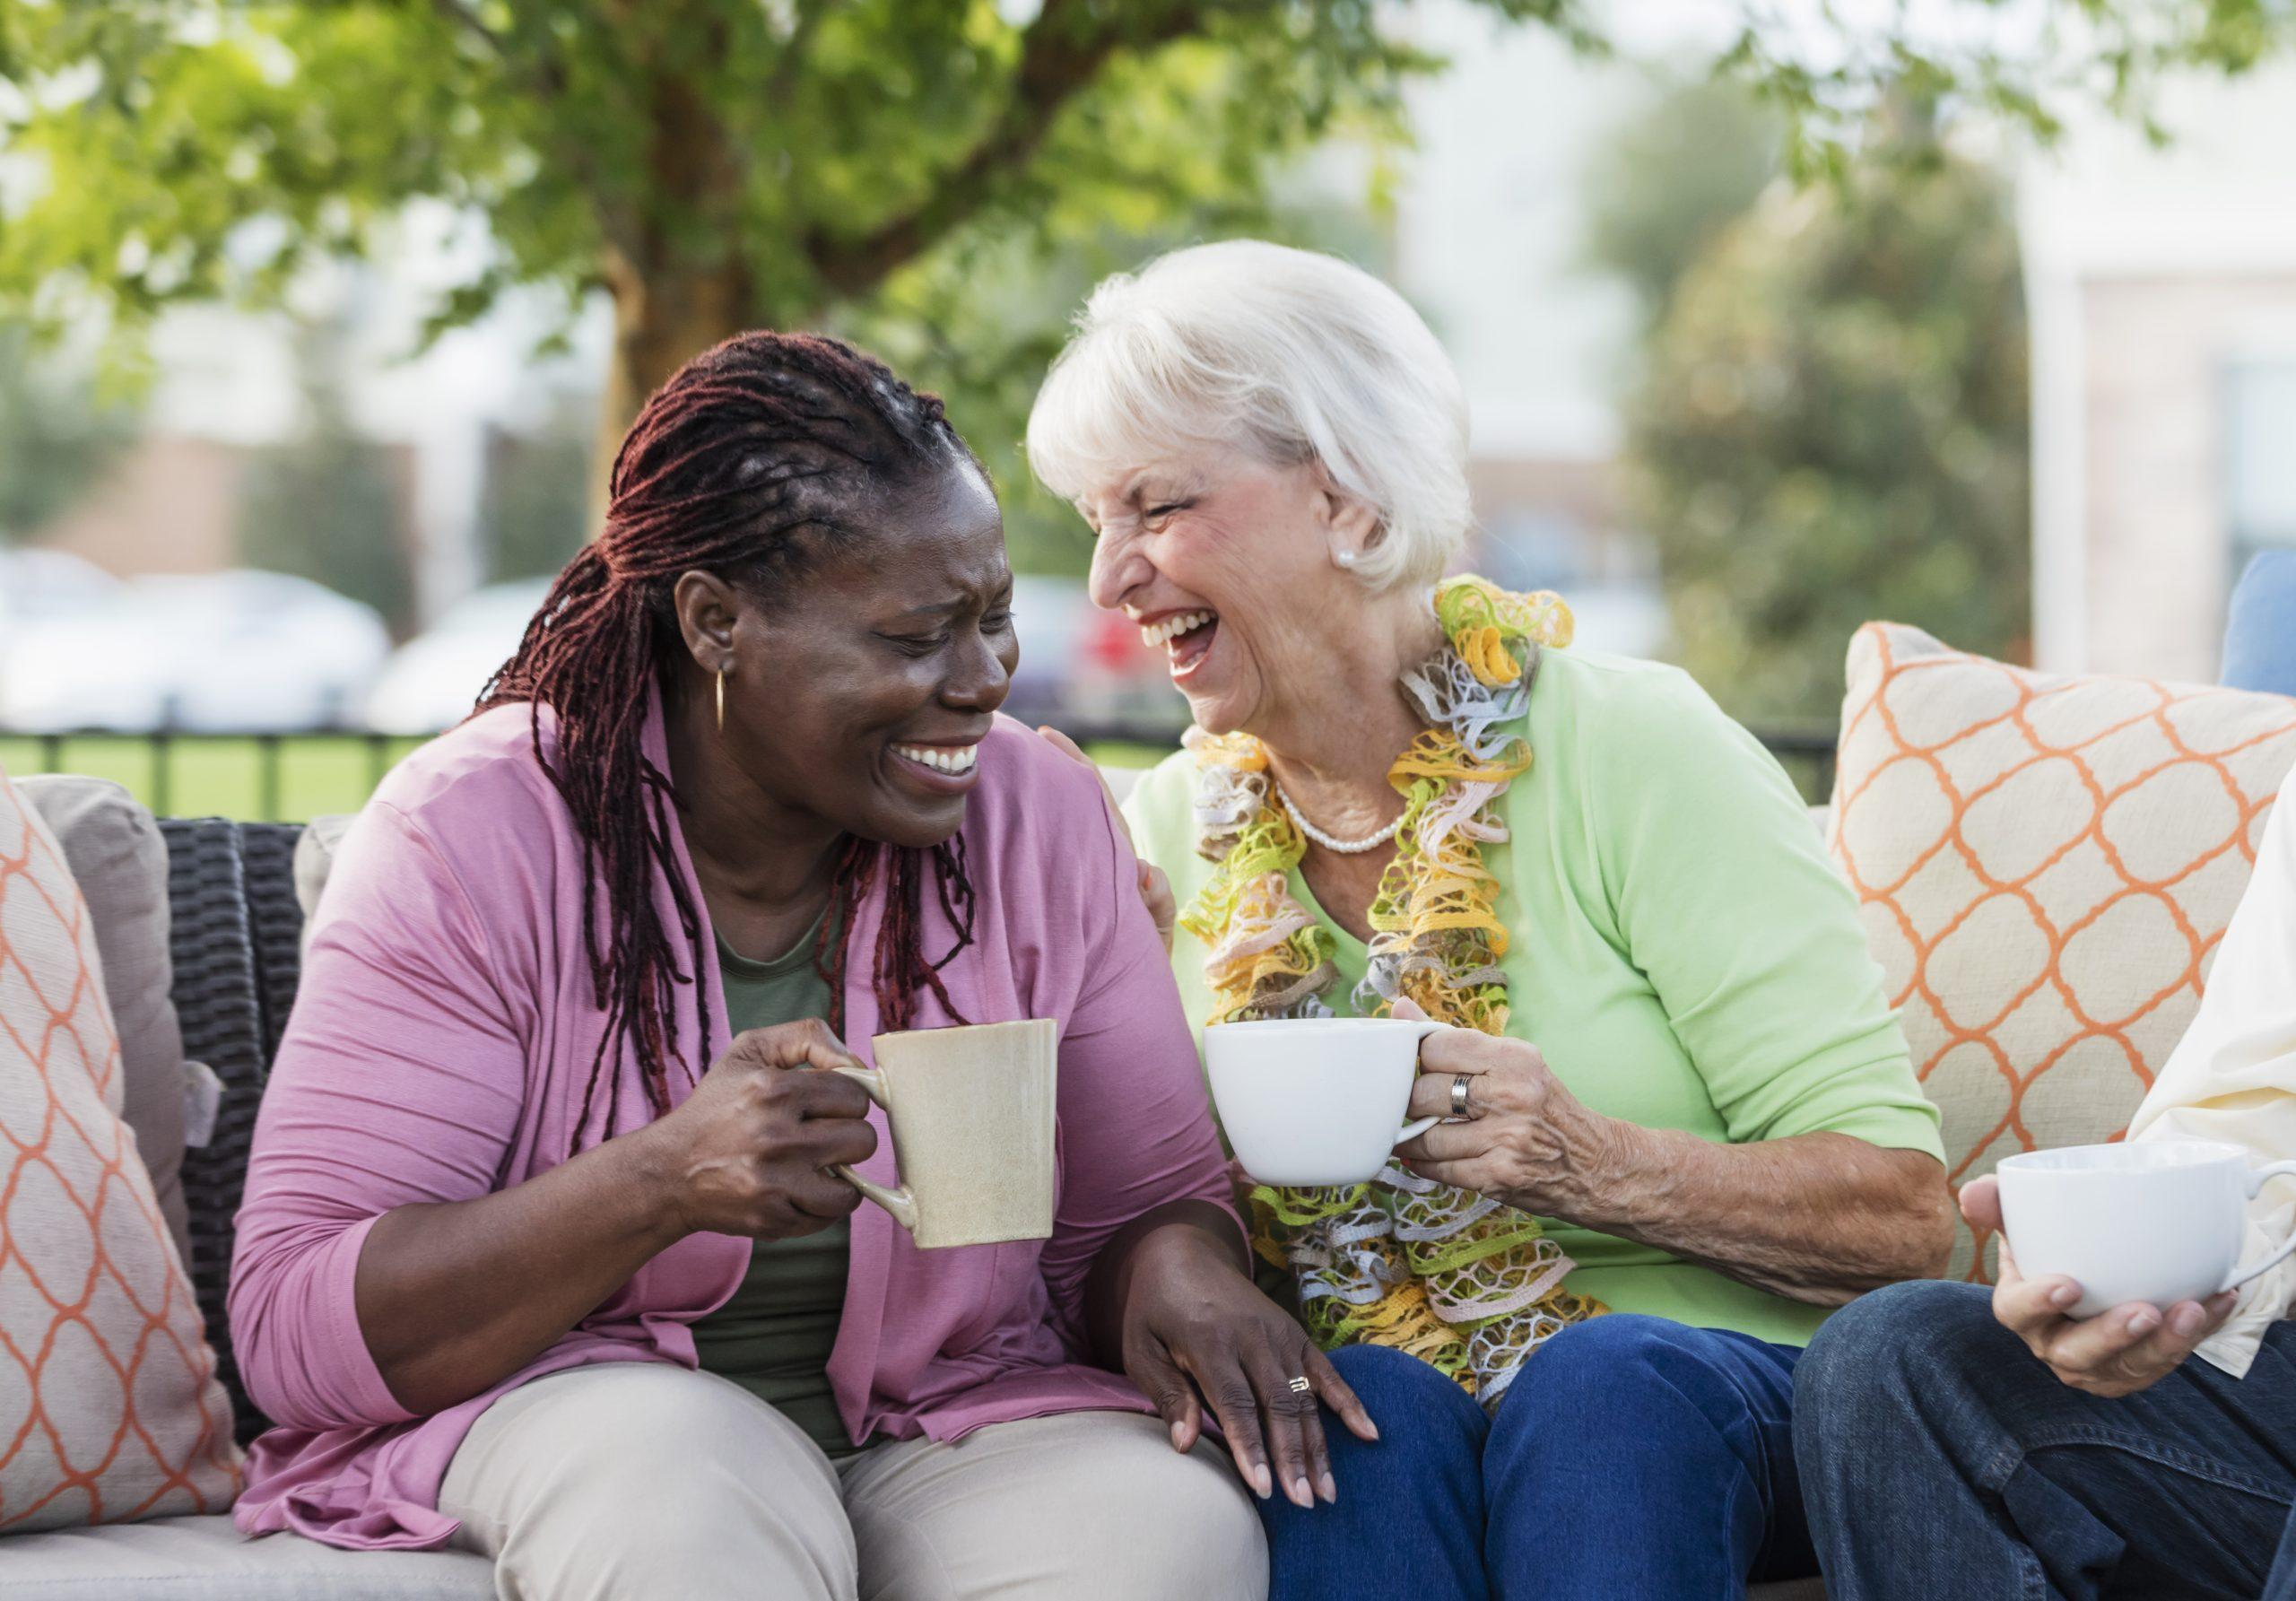 A senior woman in her 70s, drinking coffee and laughing with her African-American friend, a mature woman in her 50s. They are sitting outdoors on a patio sofa.